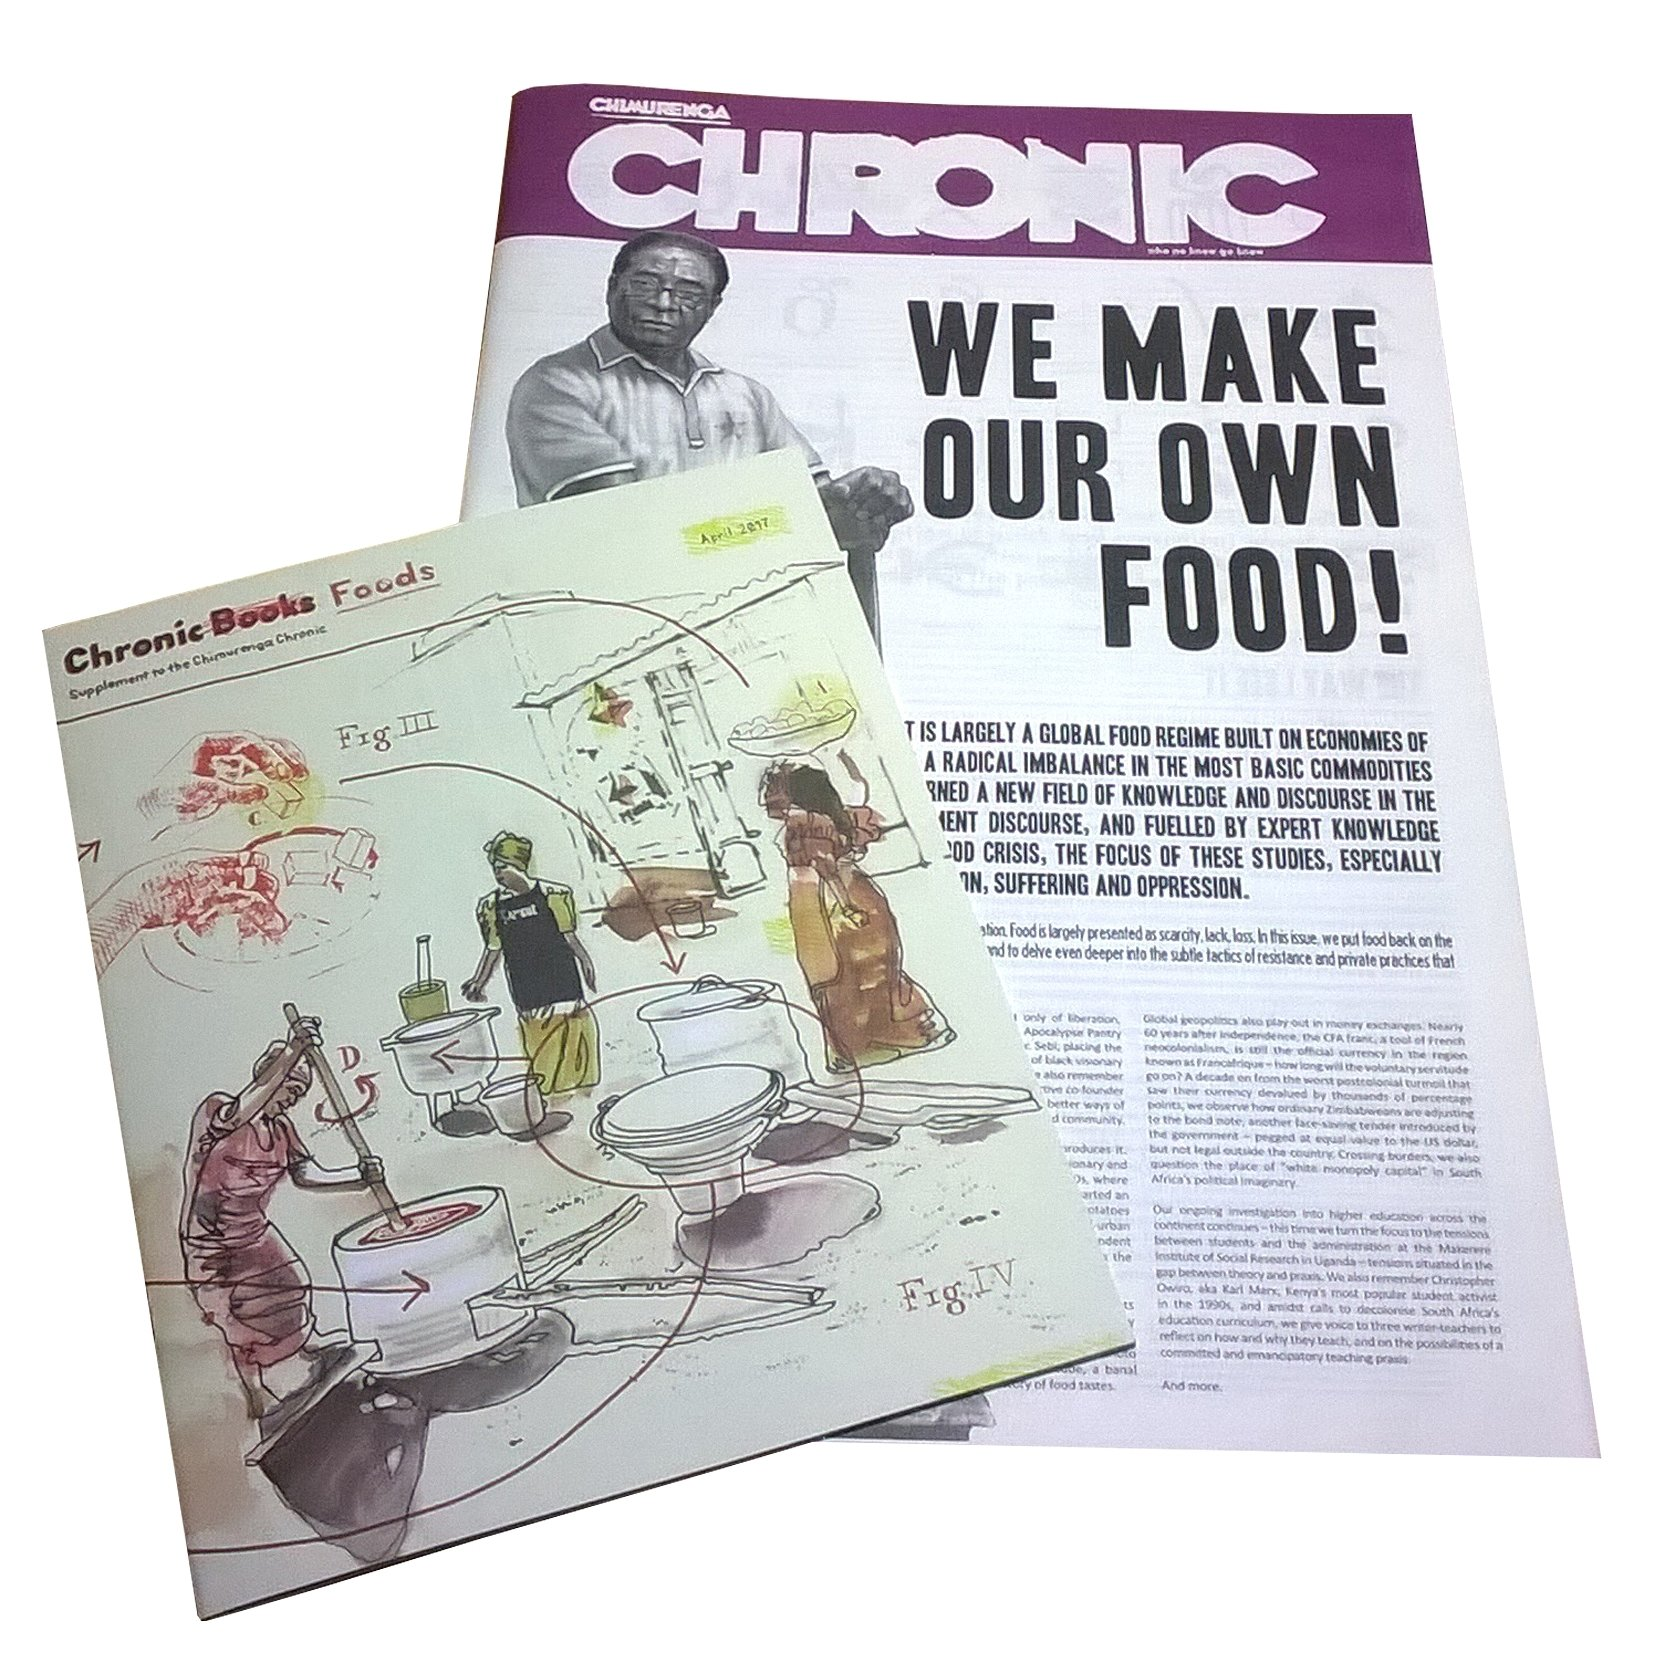 Chimurenga Chronic: We Make Our Own Food! (April 2017) Print CC0417